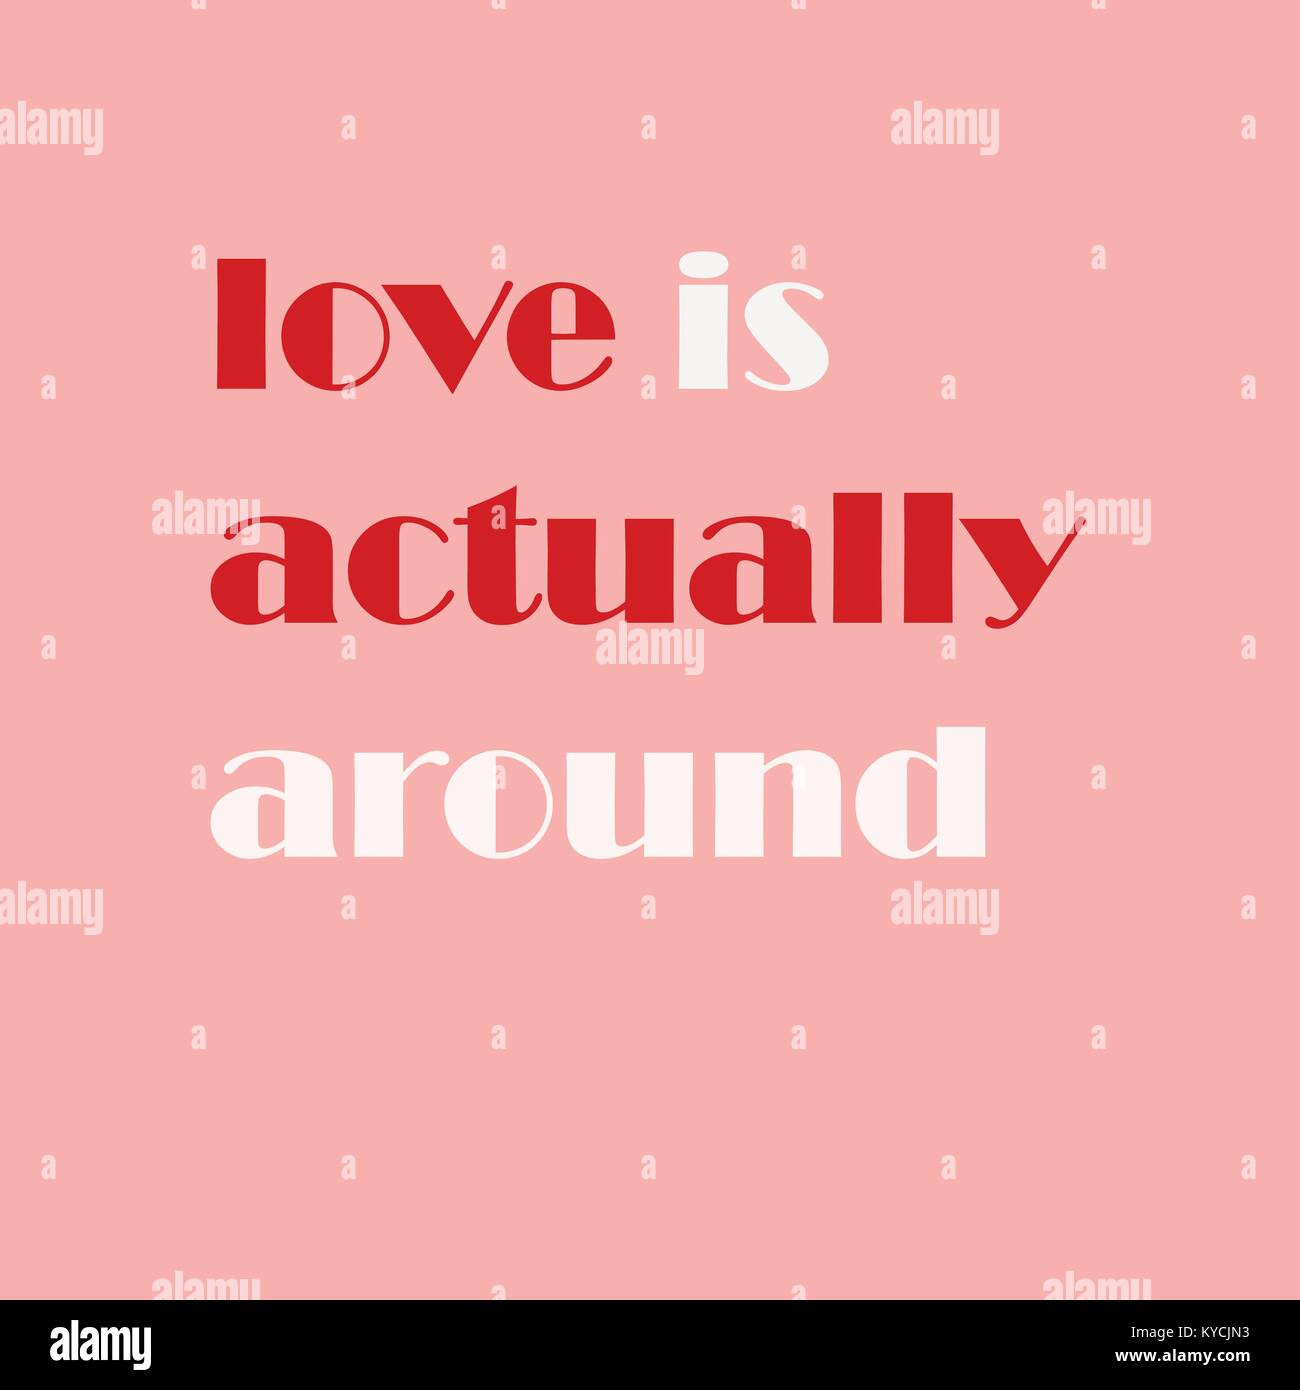 Postcard for Valentine's day. Love is actually around. Pink card - Stock Image